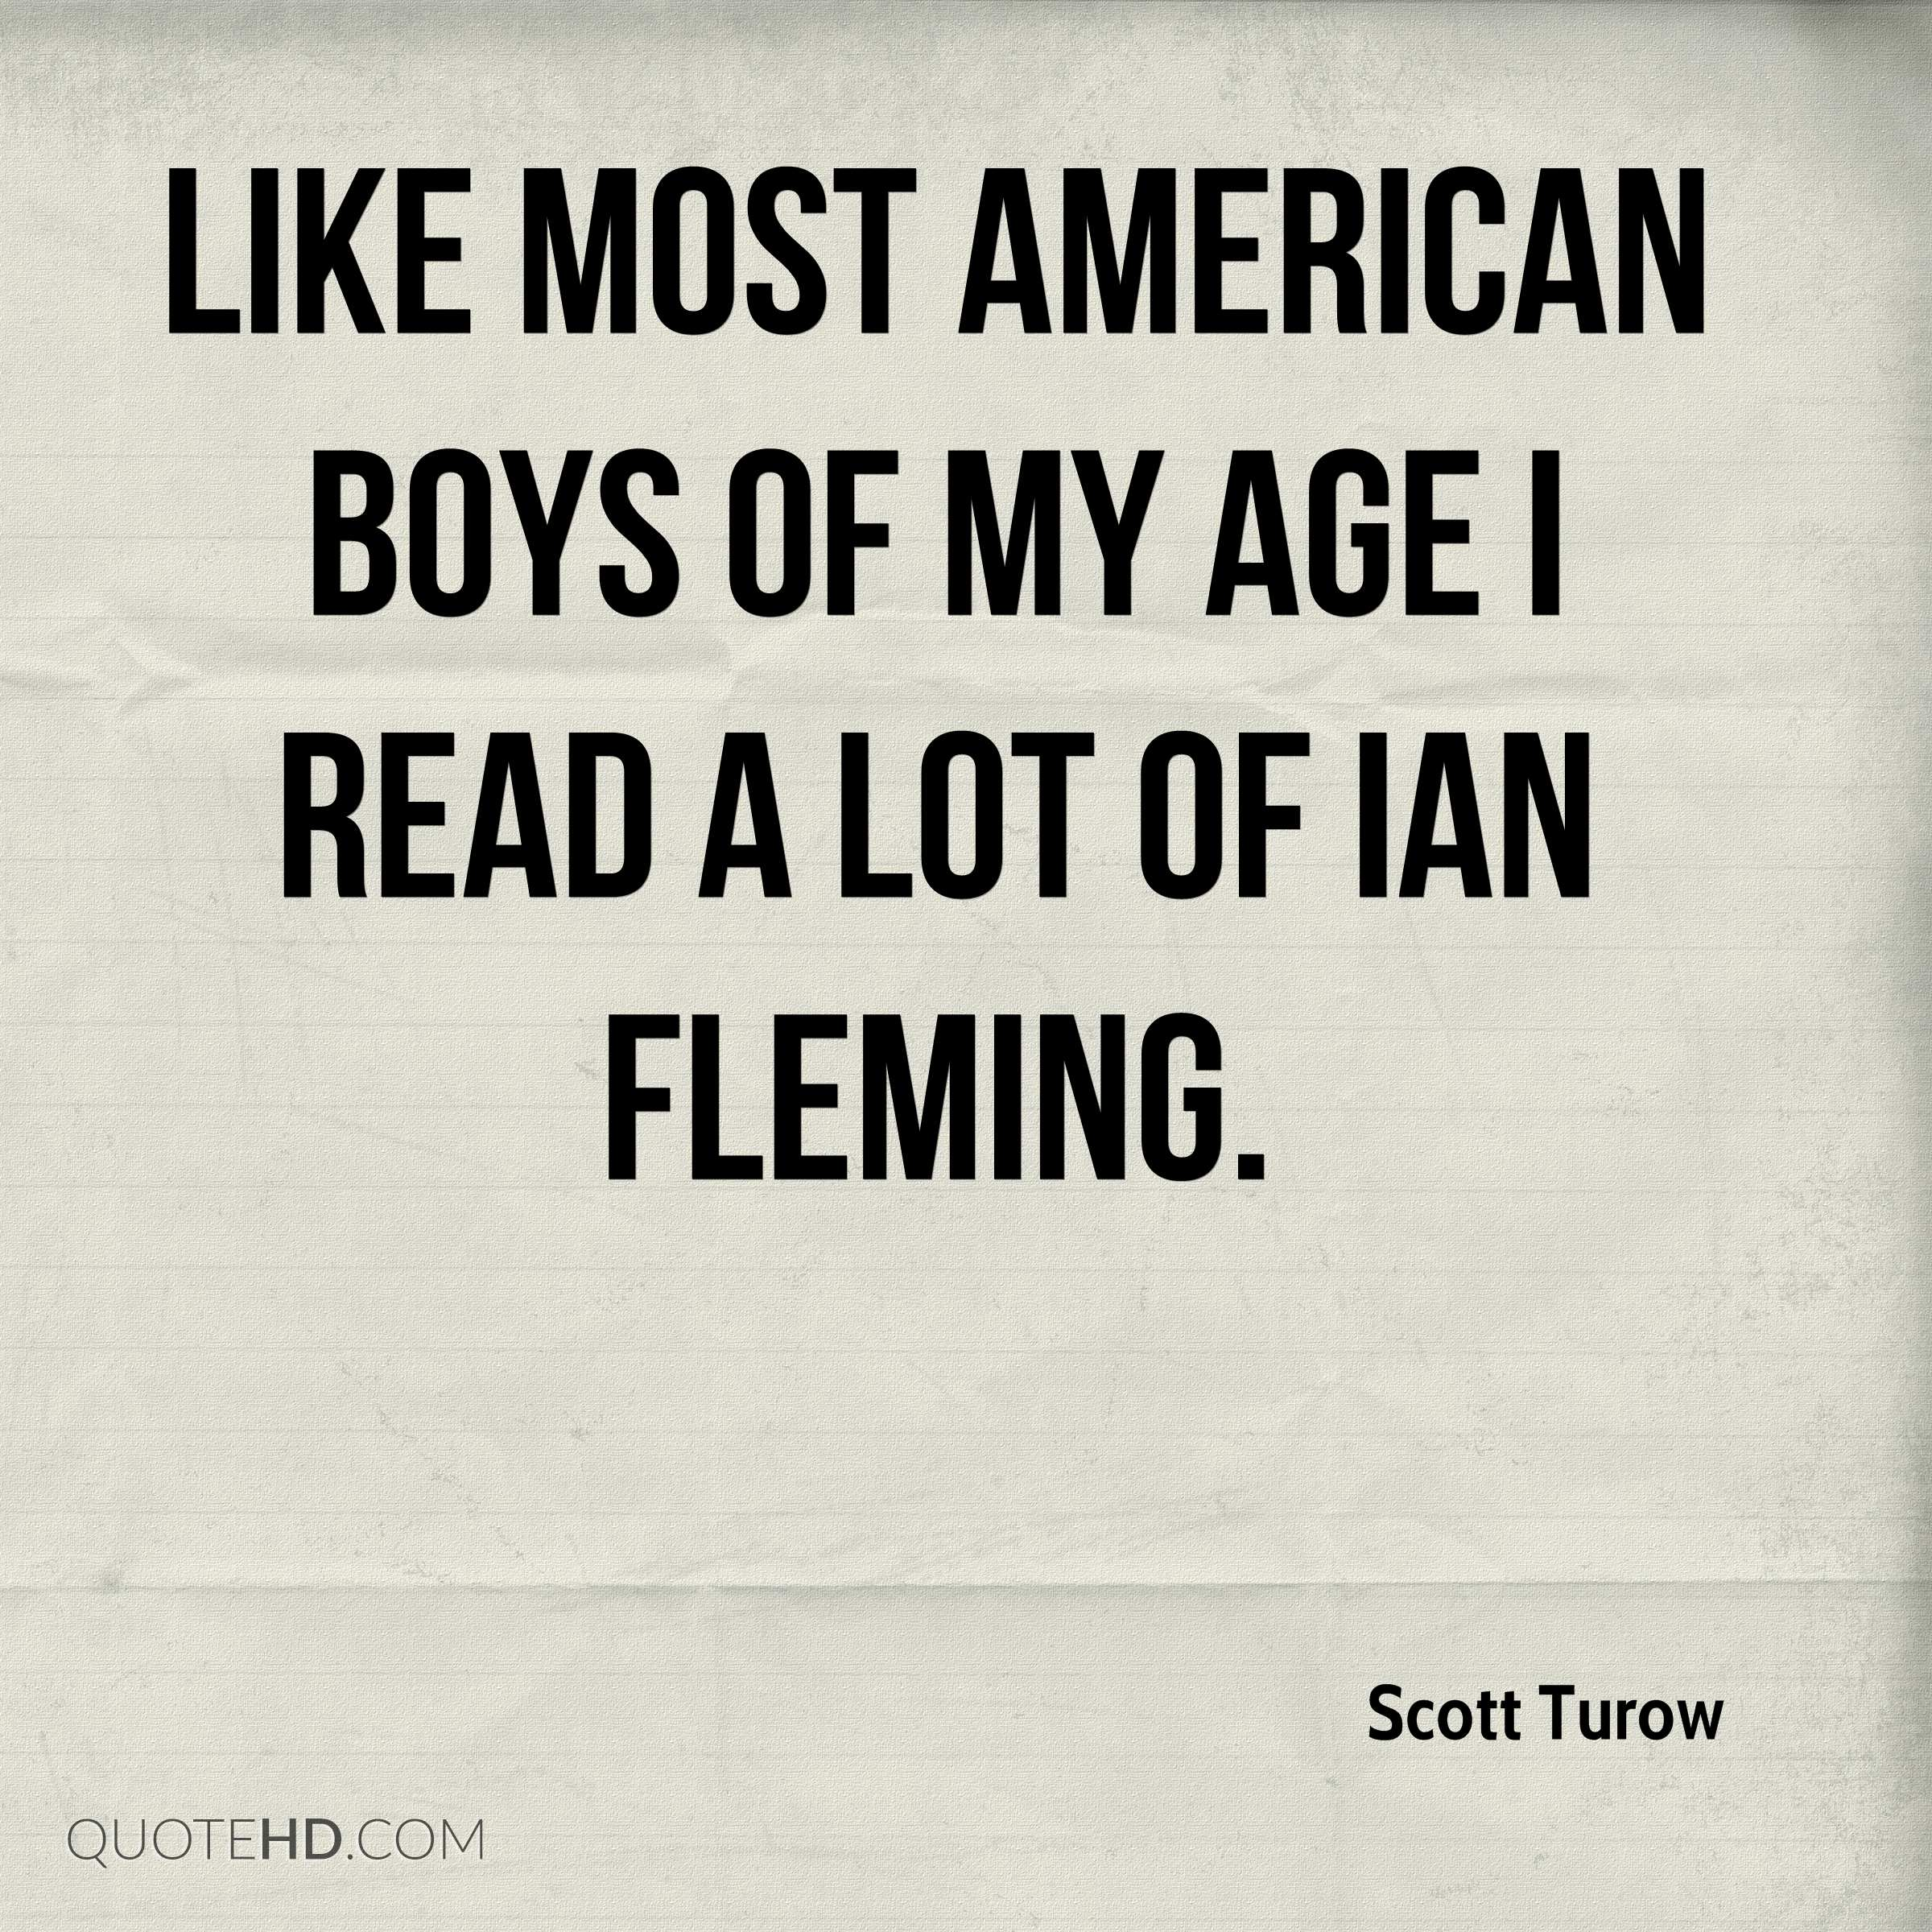 Like most American boys of my age I read a lot of Ian Fleming.